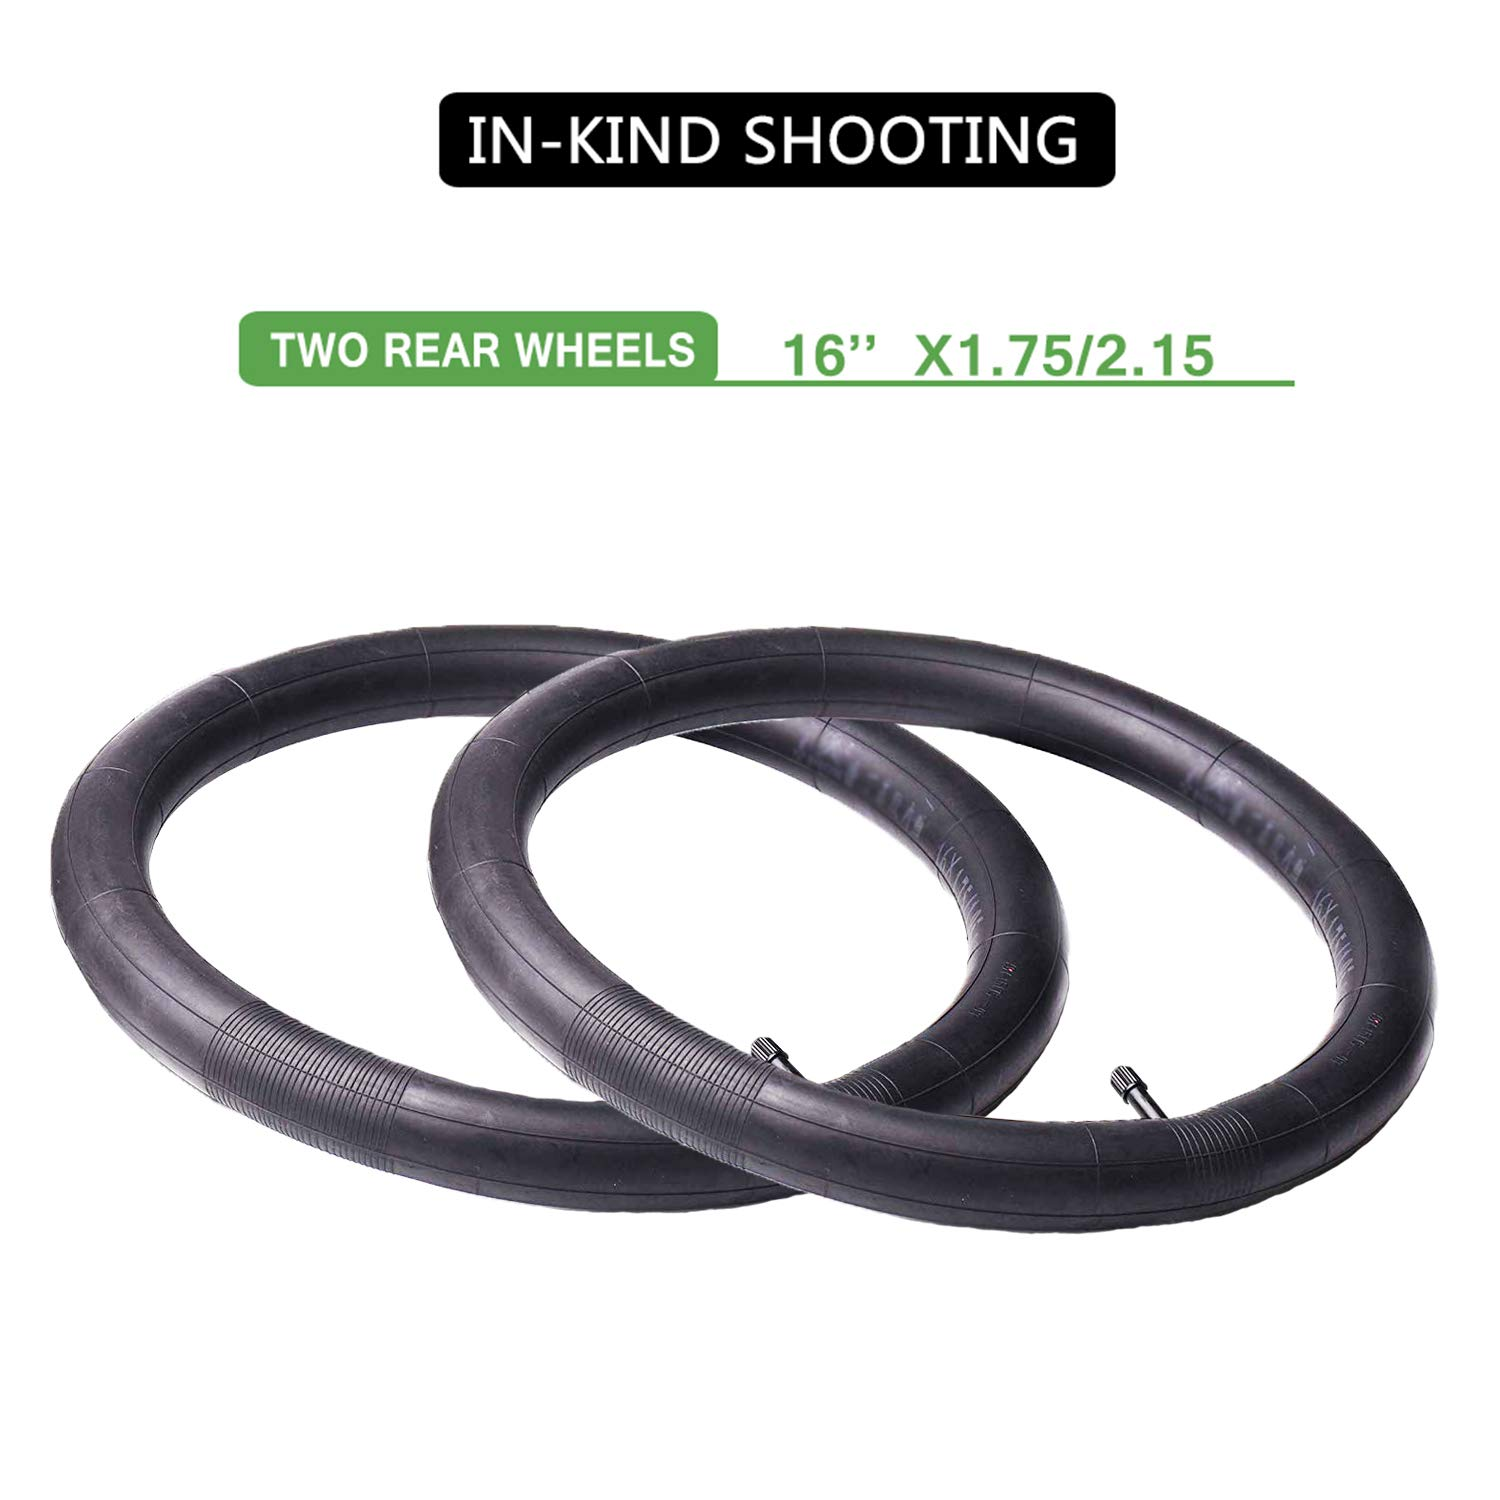 16'' x 1.75/2.15 Back Wheel Replacement Inner Tubes (2-Pack) for BoB Revolution SE/Pro/Flex/SU/Ironman - Made from BPA/Latex Free Premium Quality Butyl Rubber by YIKUSO (Image #2)